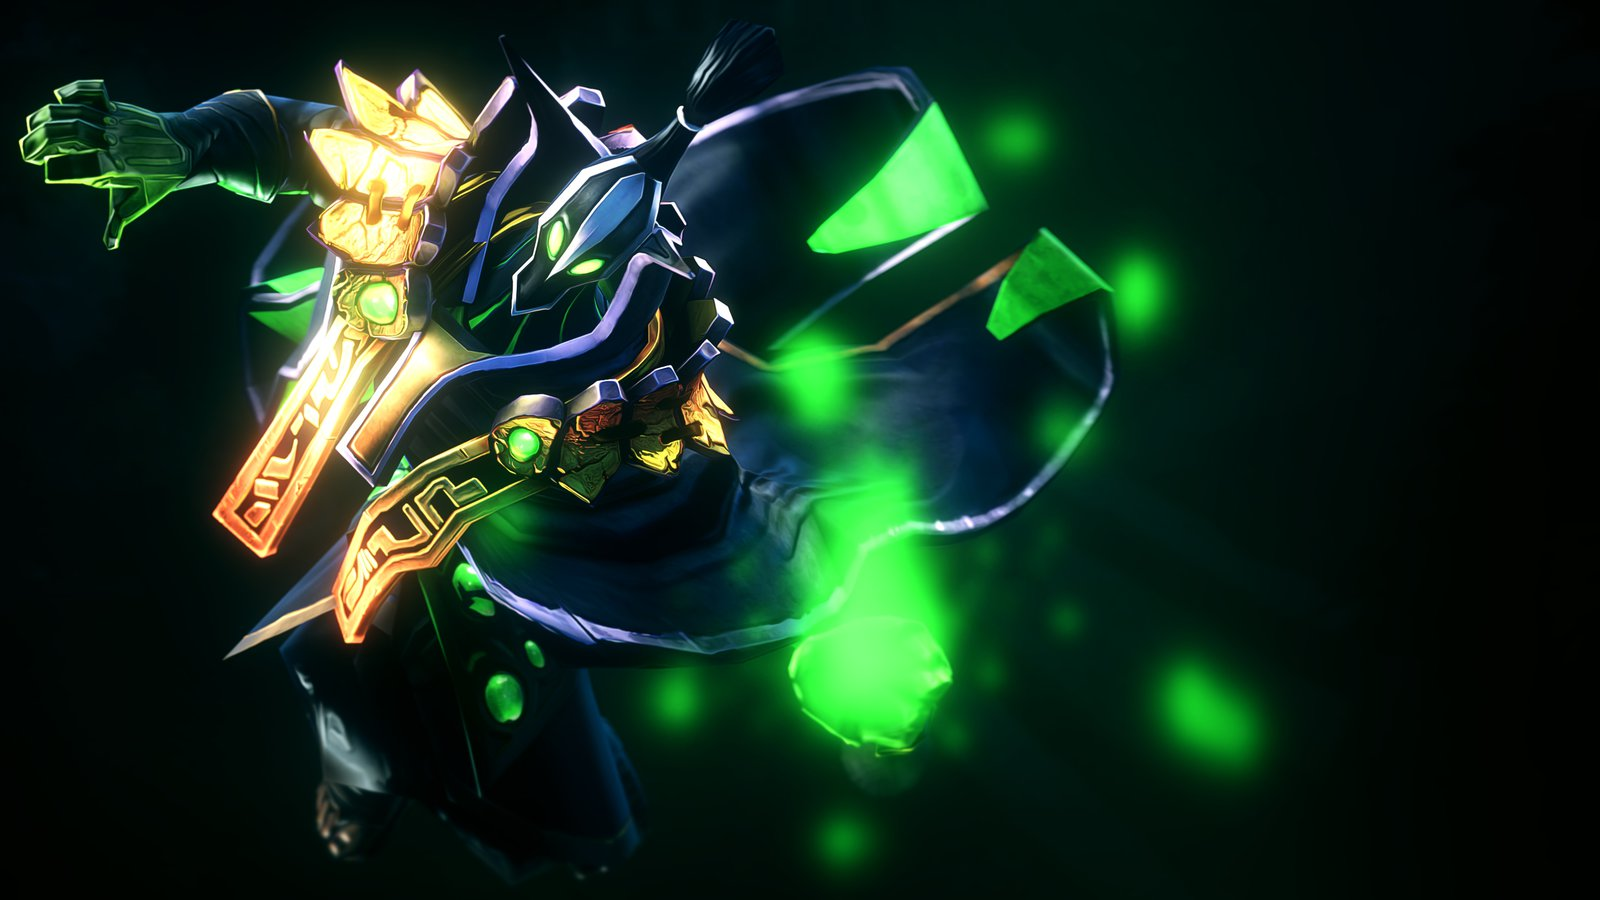 Sick Iphone Wallpapers Hd Rubick Computer Wallpaper Free Wallpapers Dota 2 Private